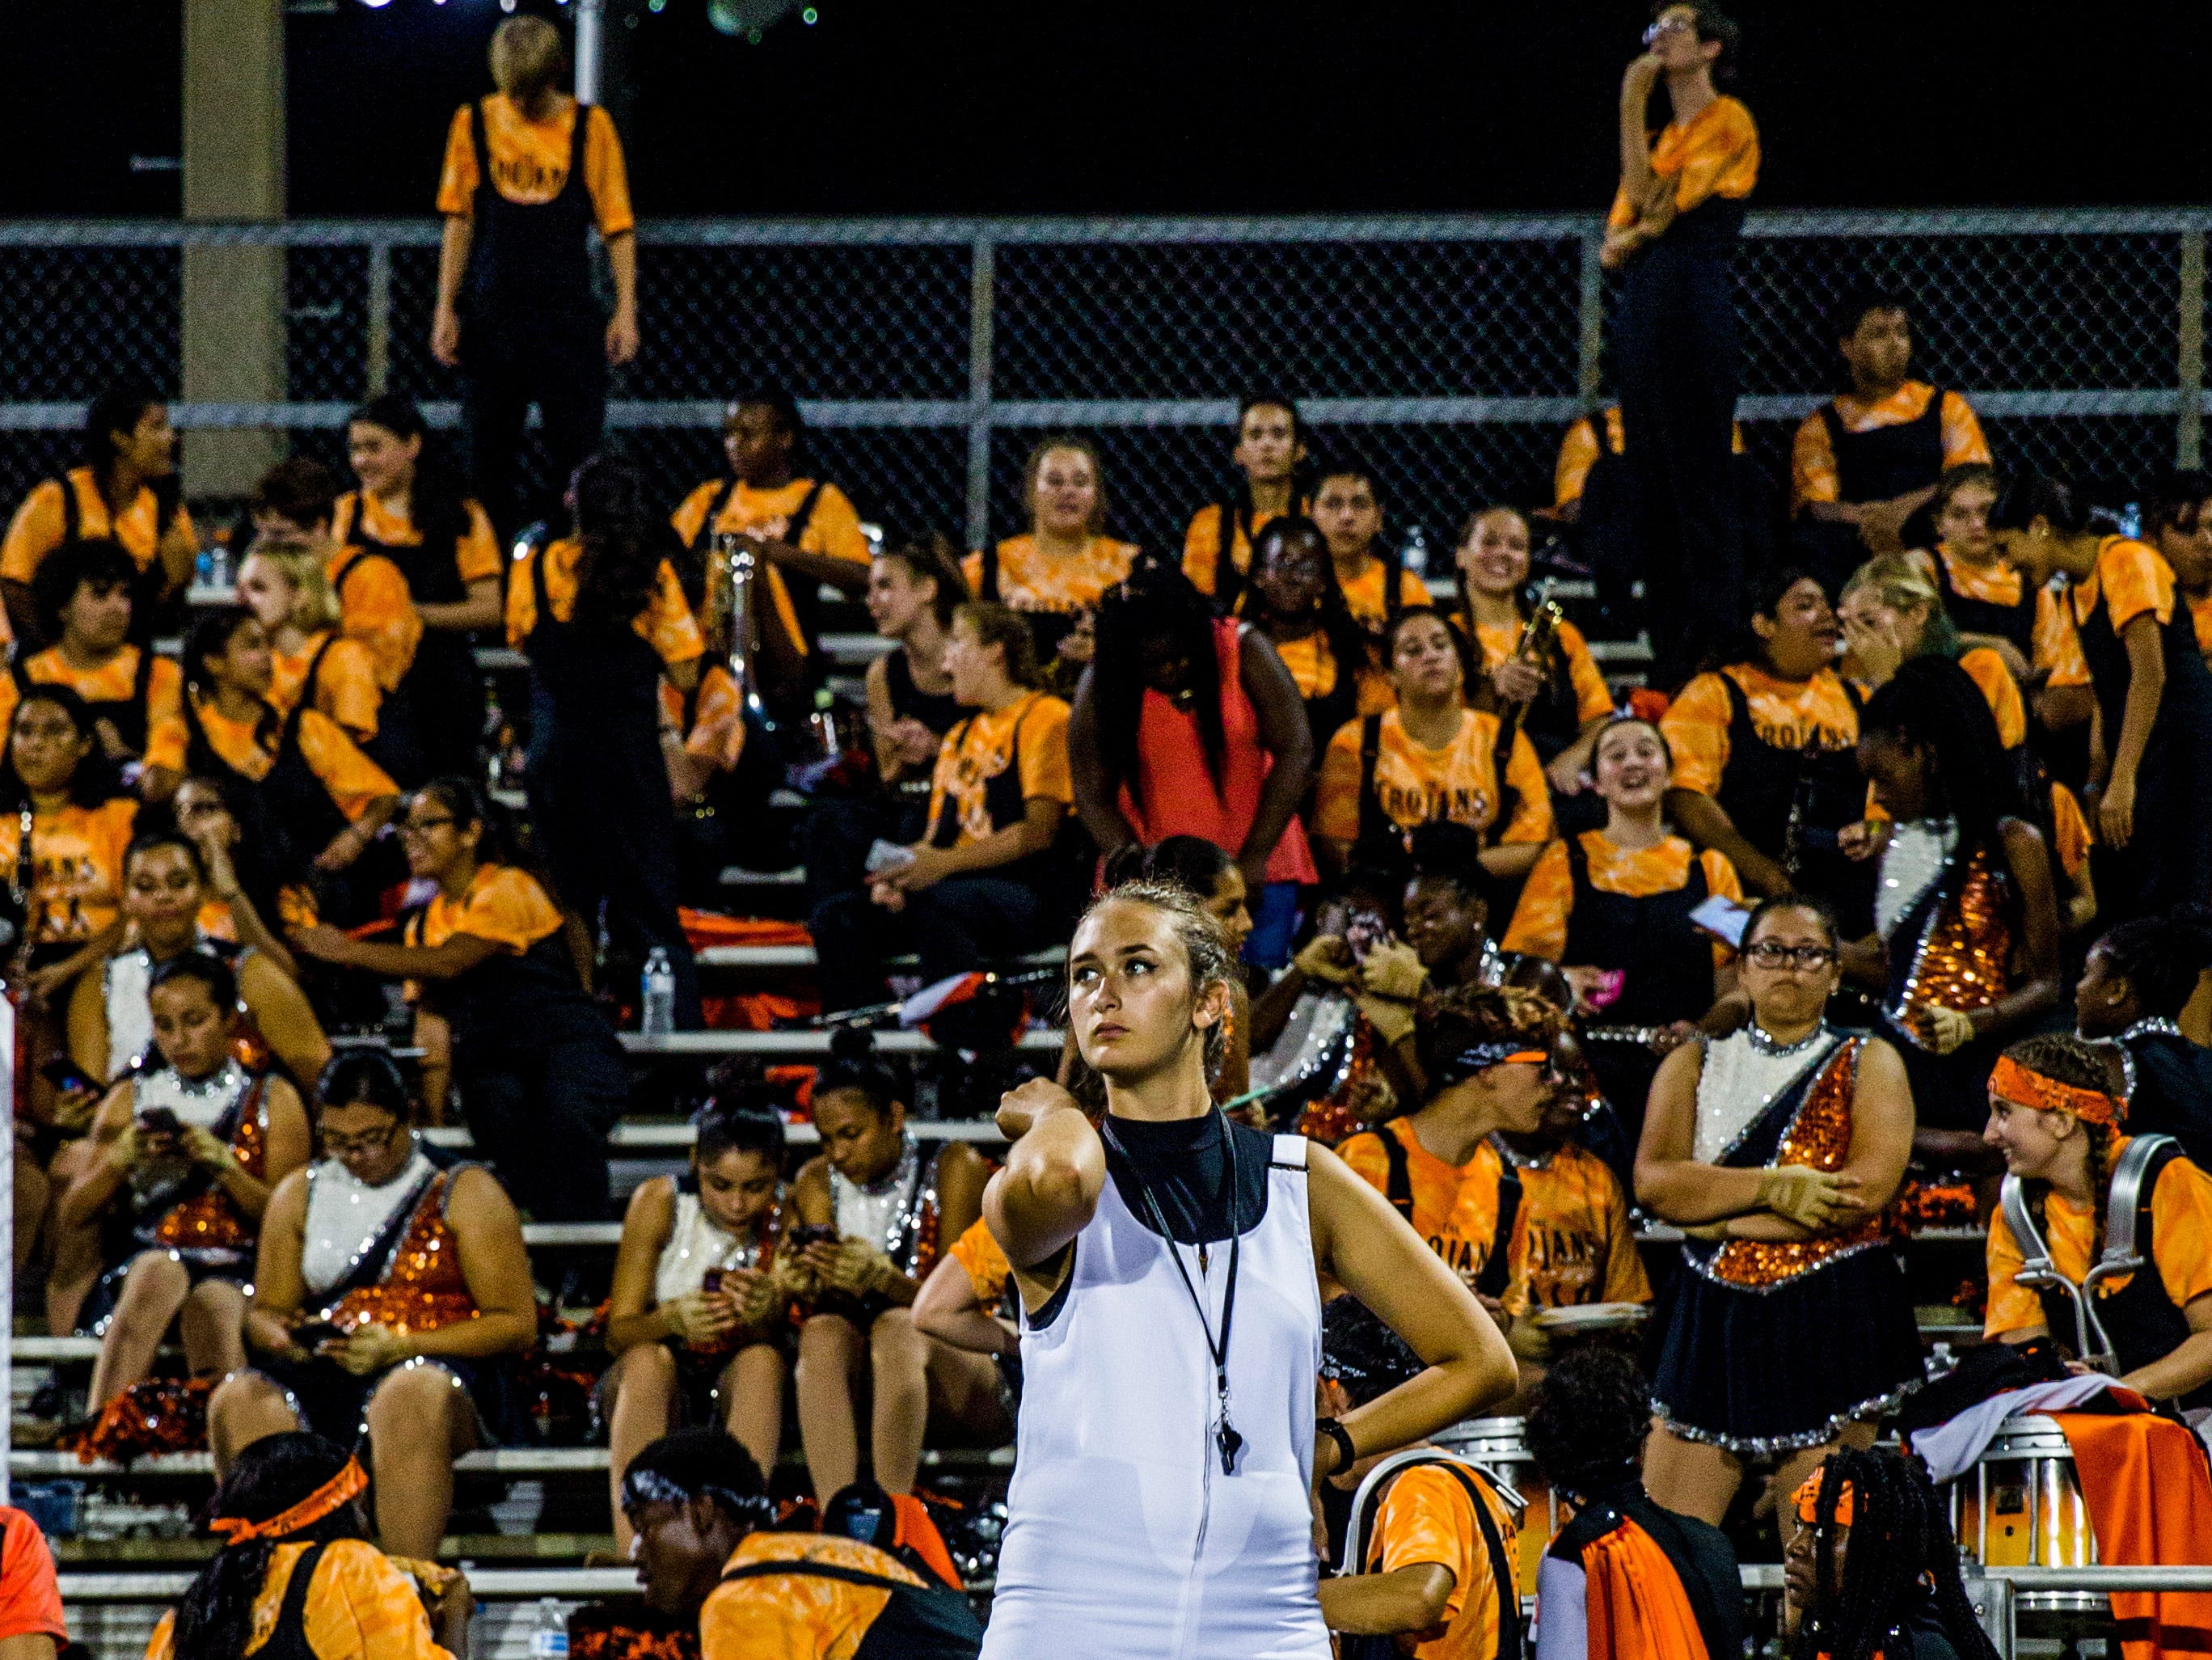 Lely band members watch the game against Golden Gate at Lely High School on Friday, Sept. 7, 2018.